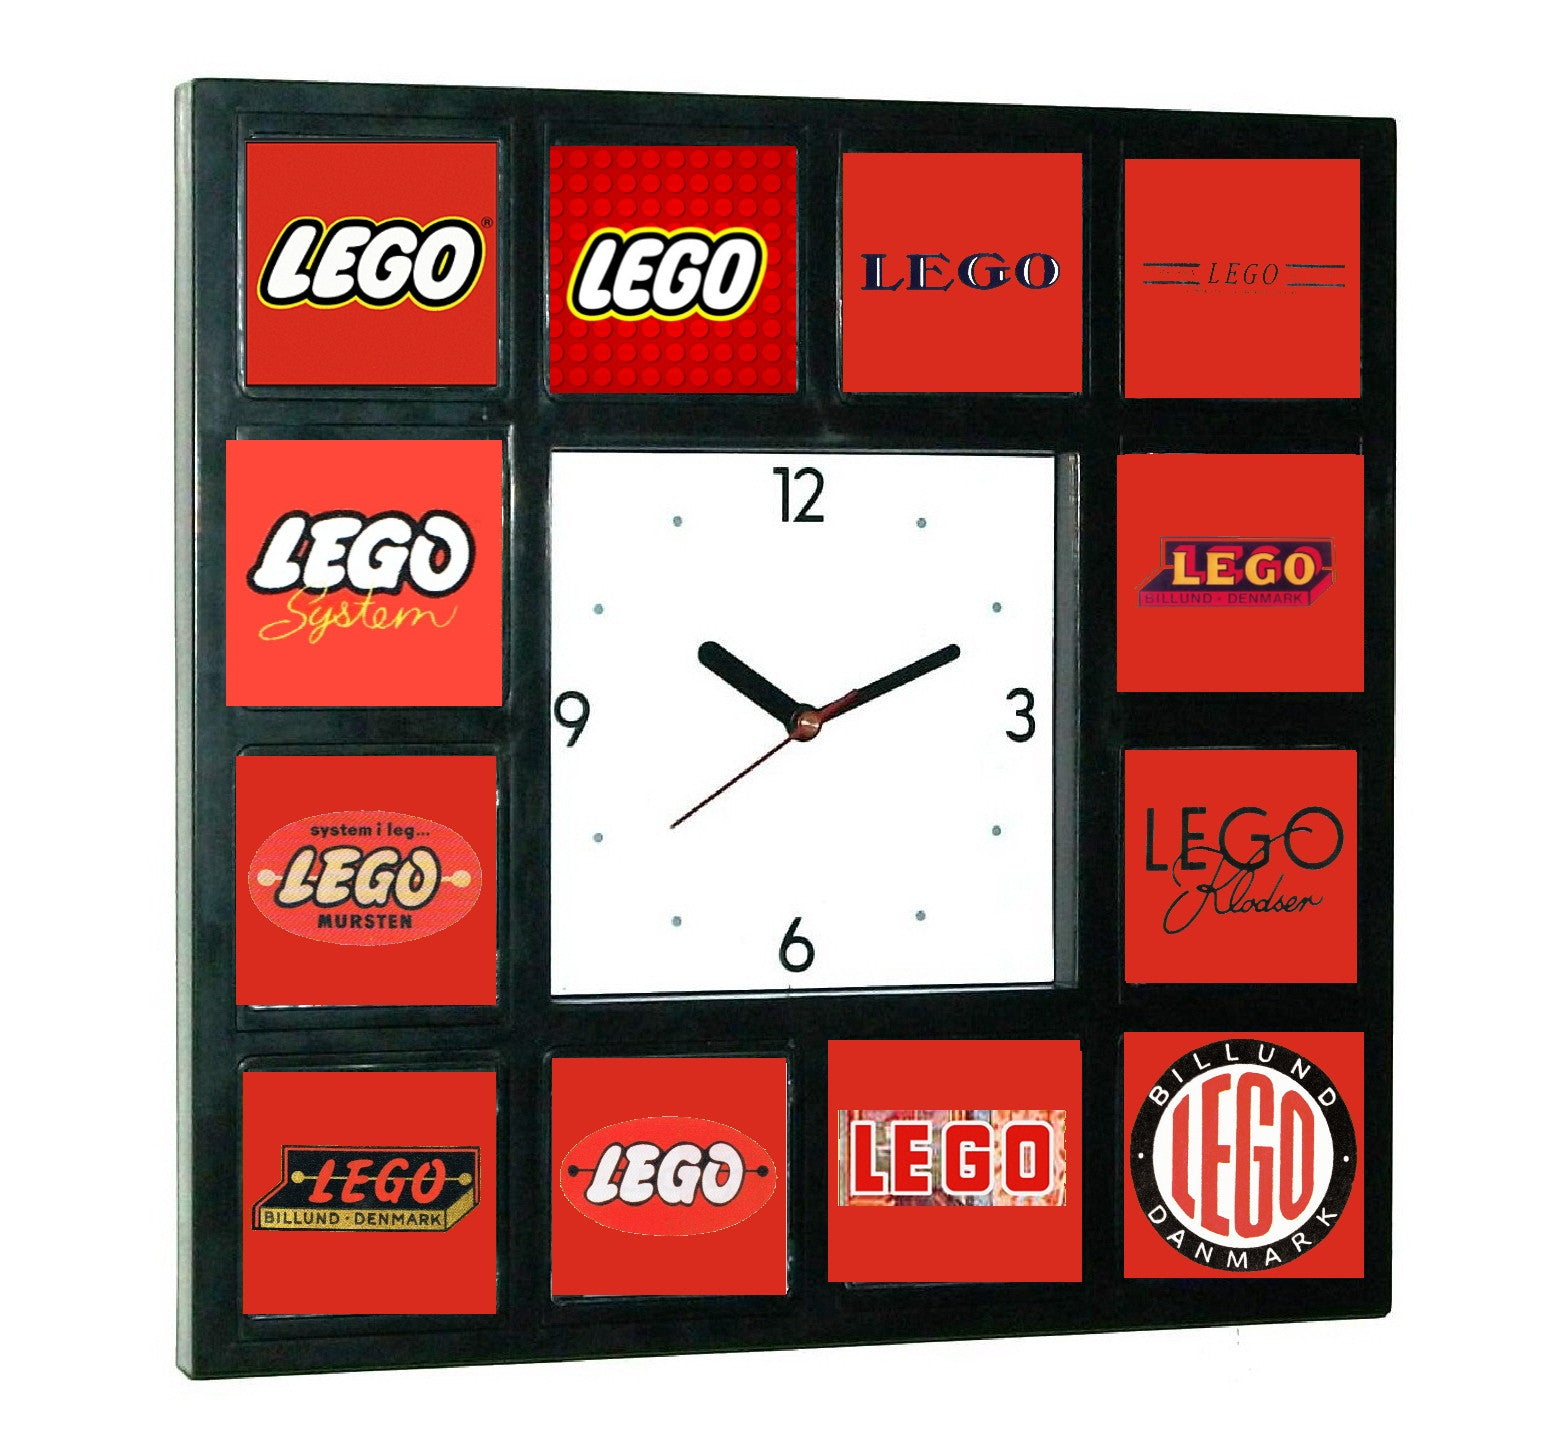 Lego logo history Clock with 12 pictures , Clocks & Radios - Final Score Products, Final Score Products